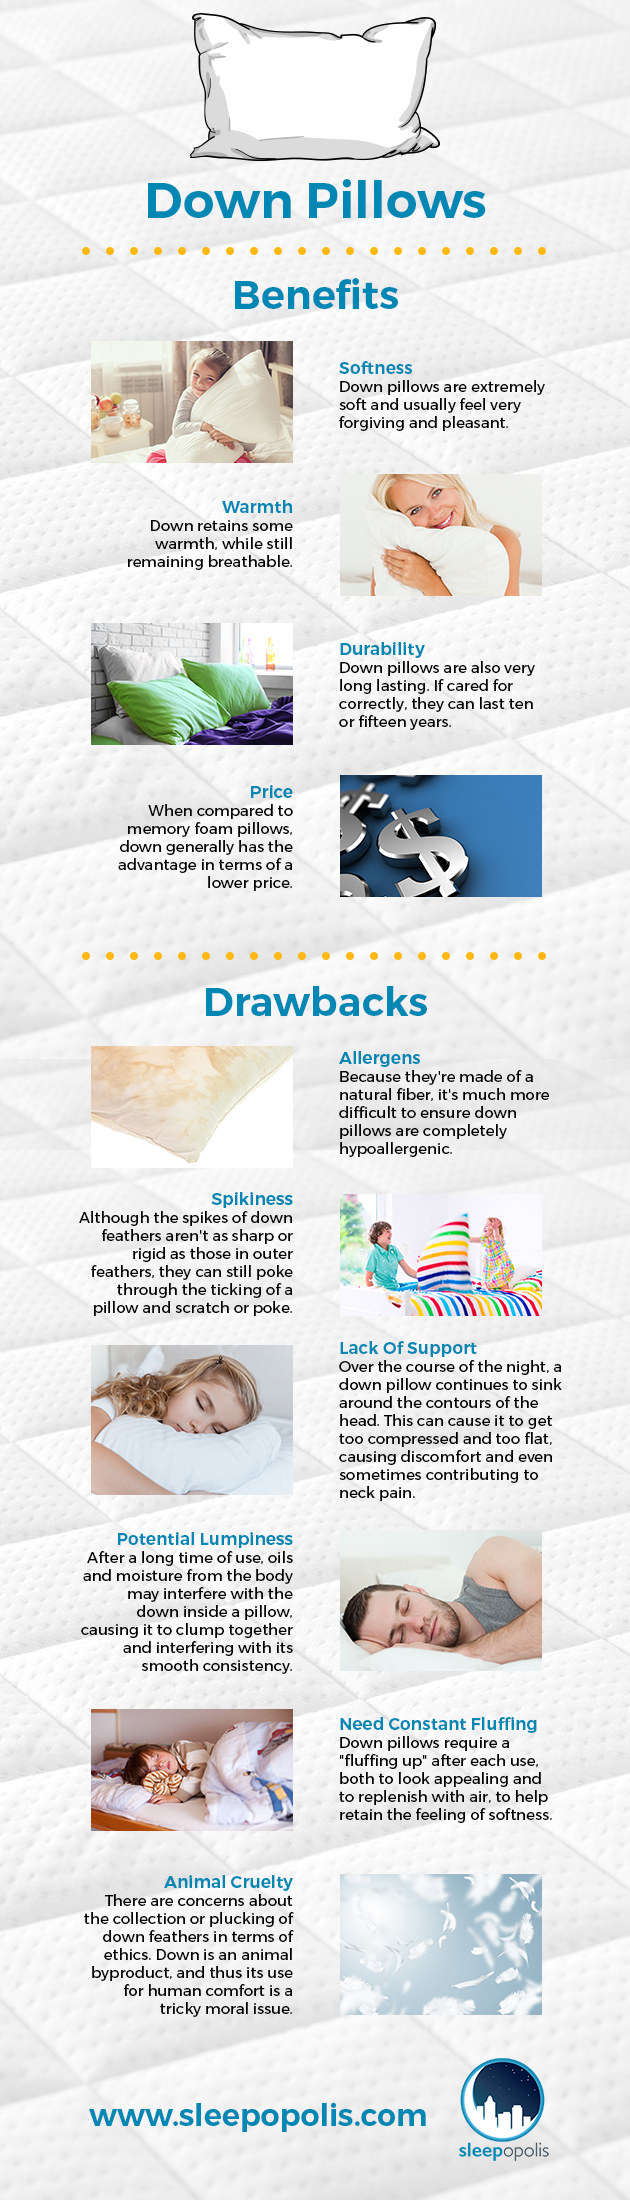 Down_Pillows Memory Foam vs Down Pillow: Differences and Benefits